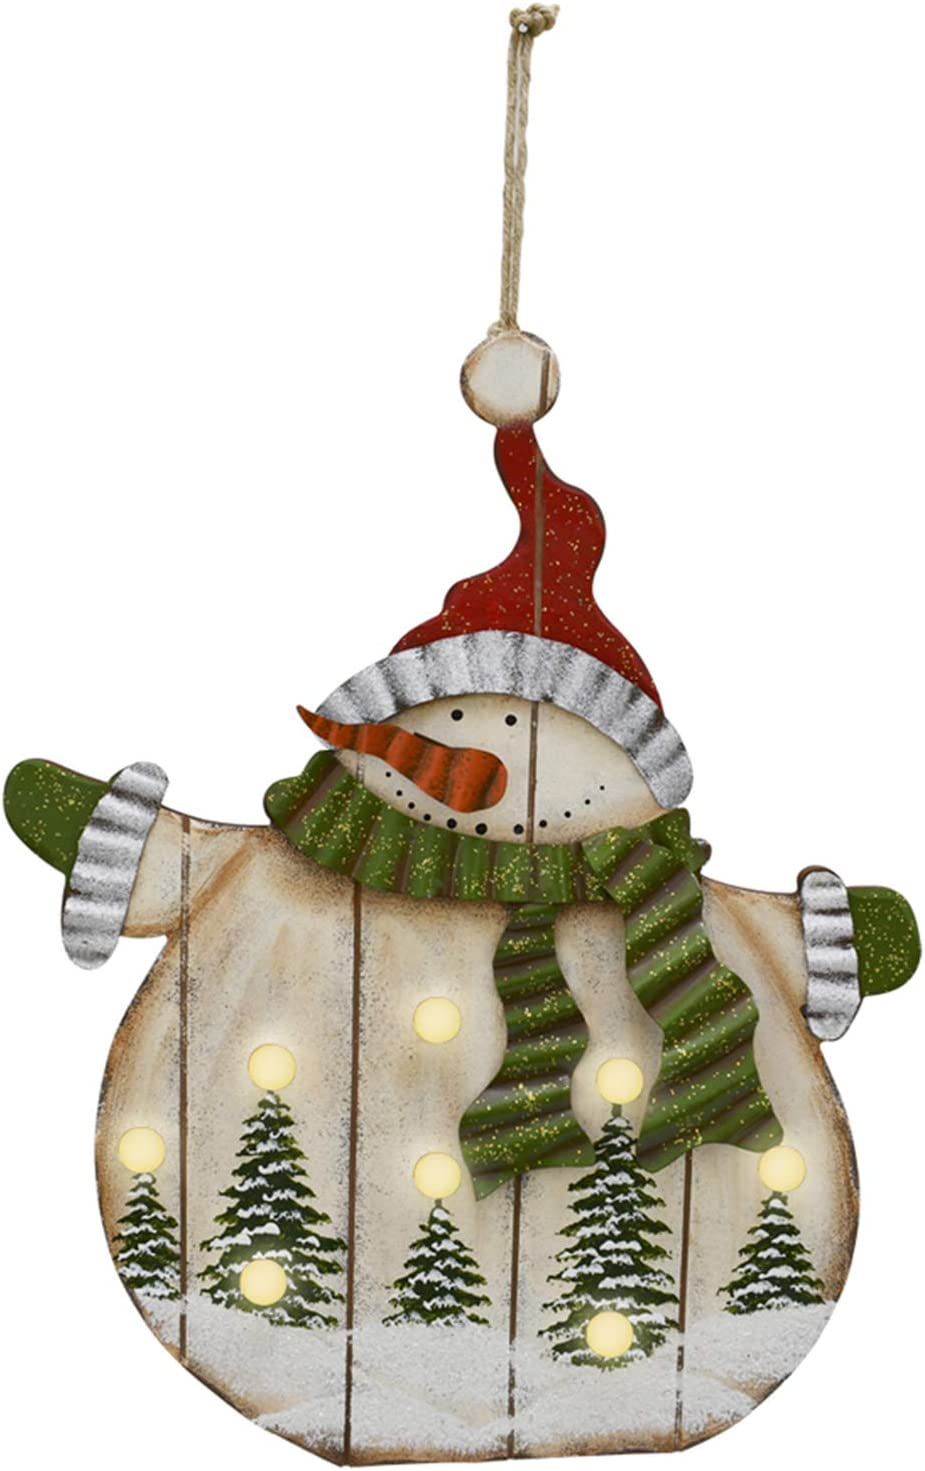 Snowman Christmas Ornament with Led Bulb Rustic Lighted Snowman Hanging Sign Christmas Wall Hanging Decor Xmas Tree Ornament Holiday Decor 16.5x13.75inch